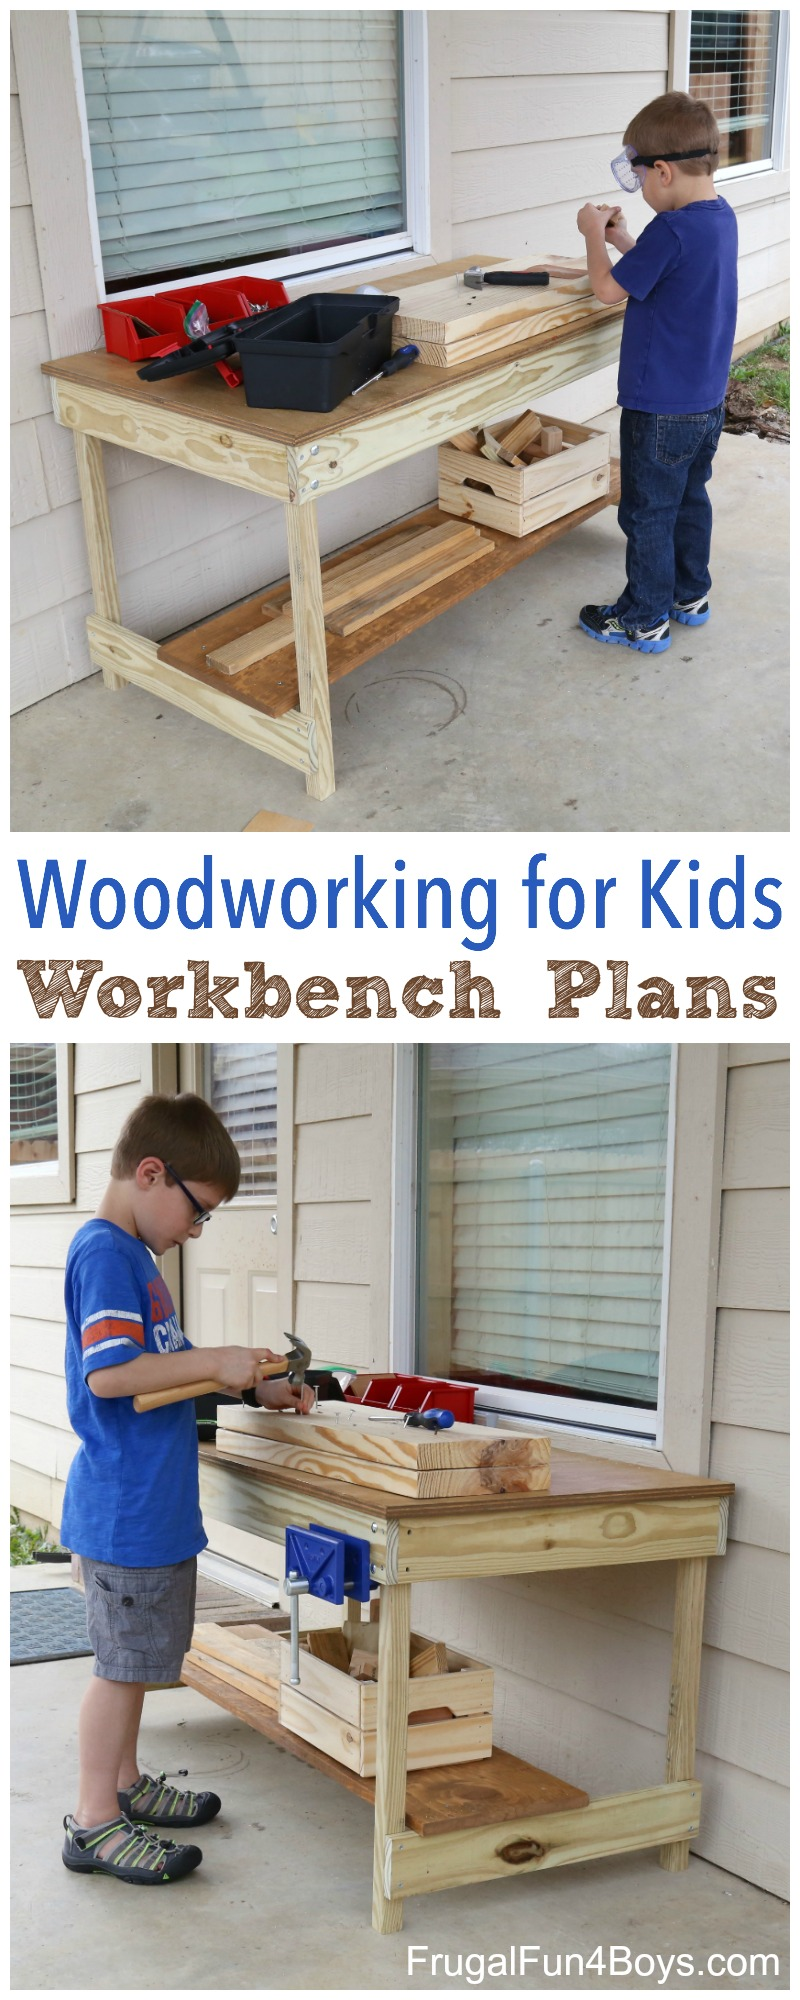 Kids Workbench Plans Build Your Own Kids Woodworking Space